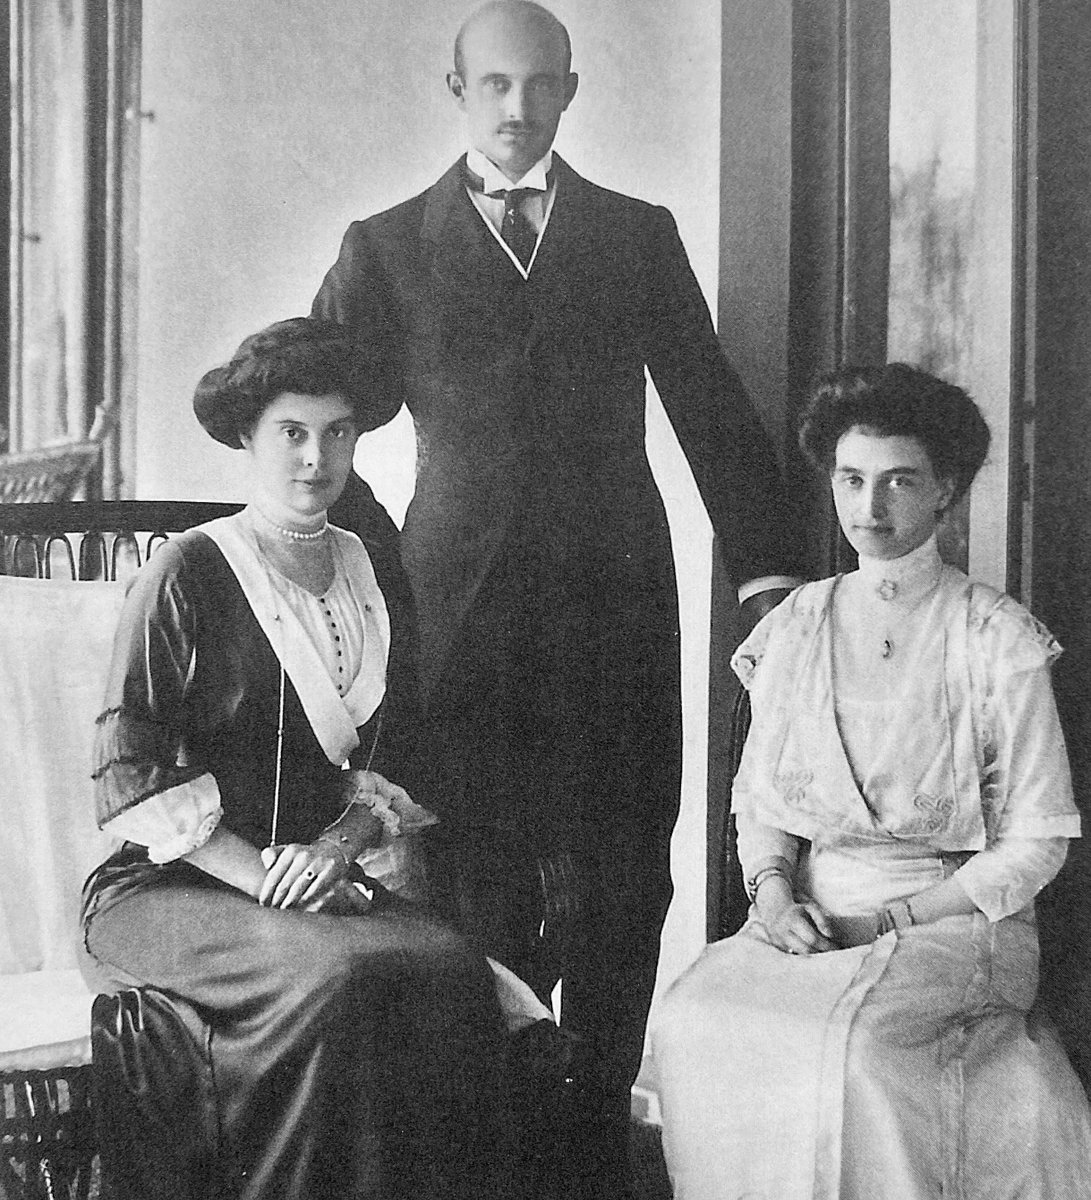 Circa 1910:  Grand Duke Friedrich Franz IV of Mecklenburg-Schwerin with his wife Grand Duchess Alexandra, born Princess of Hanover (right), and his sister Crown Princess Cecilie of Prussia.  Alexandra was a first cousin of King George V and Tsar Nicholas II.  #RoyalHistory<br>http://pic.twitter.com/R2Zy61skou